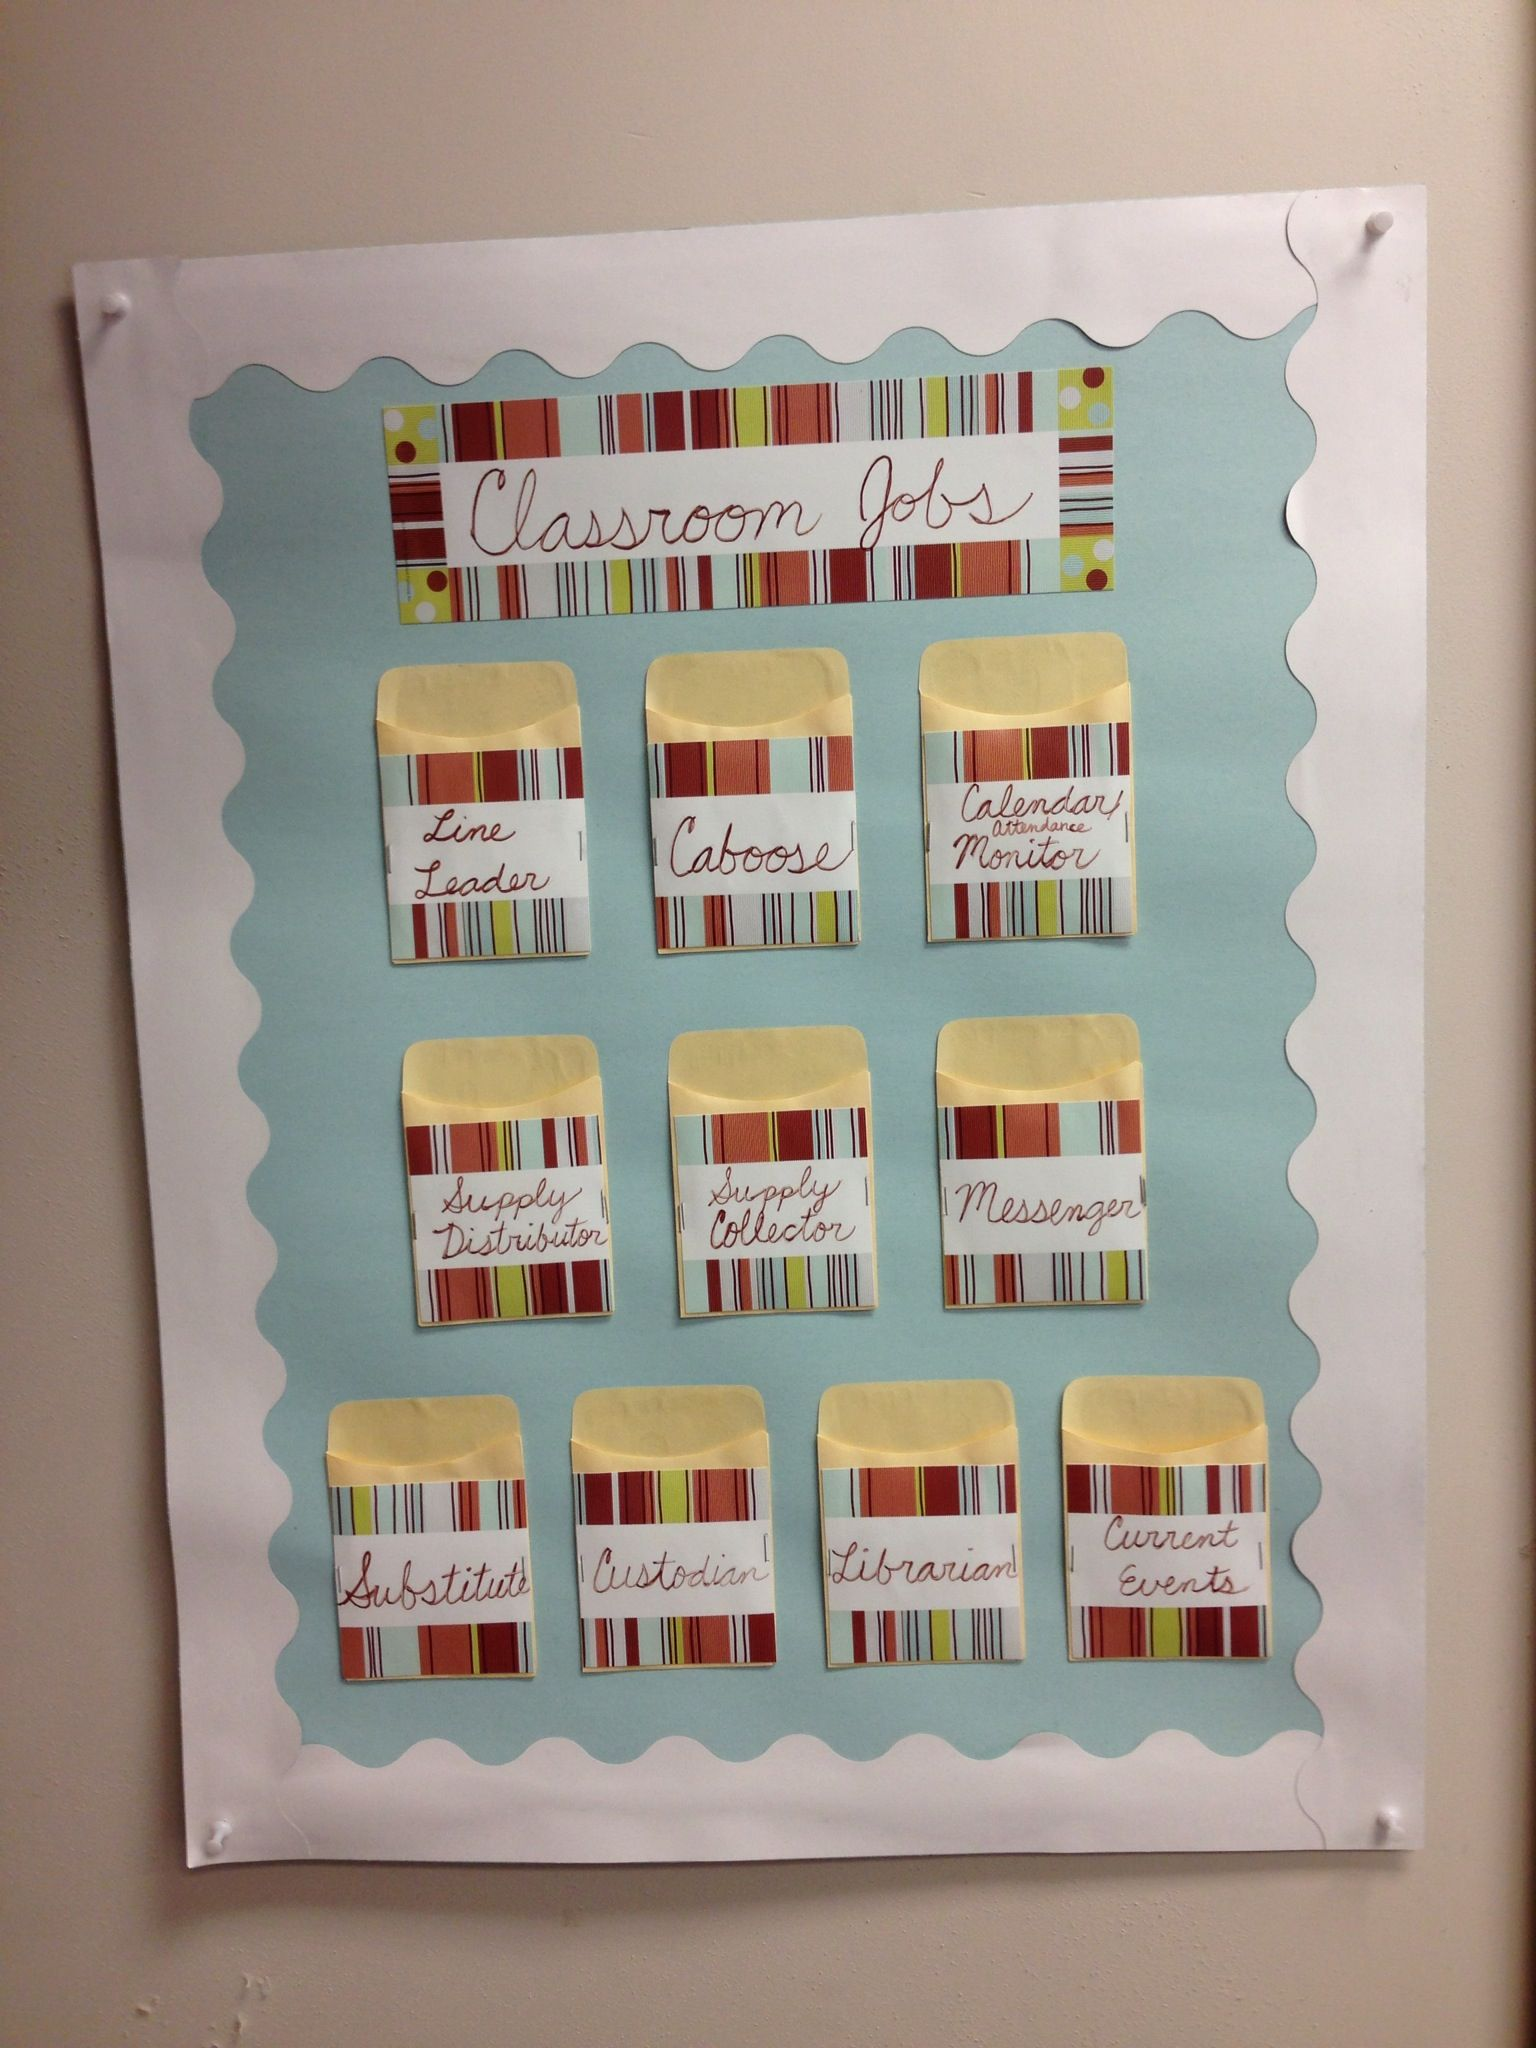 DIY Classroom Jobs Chart posterboard, desk name cards